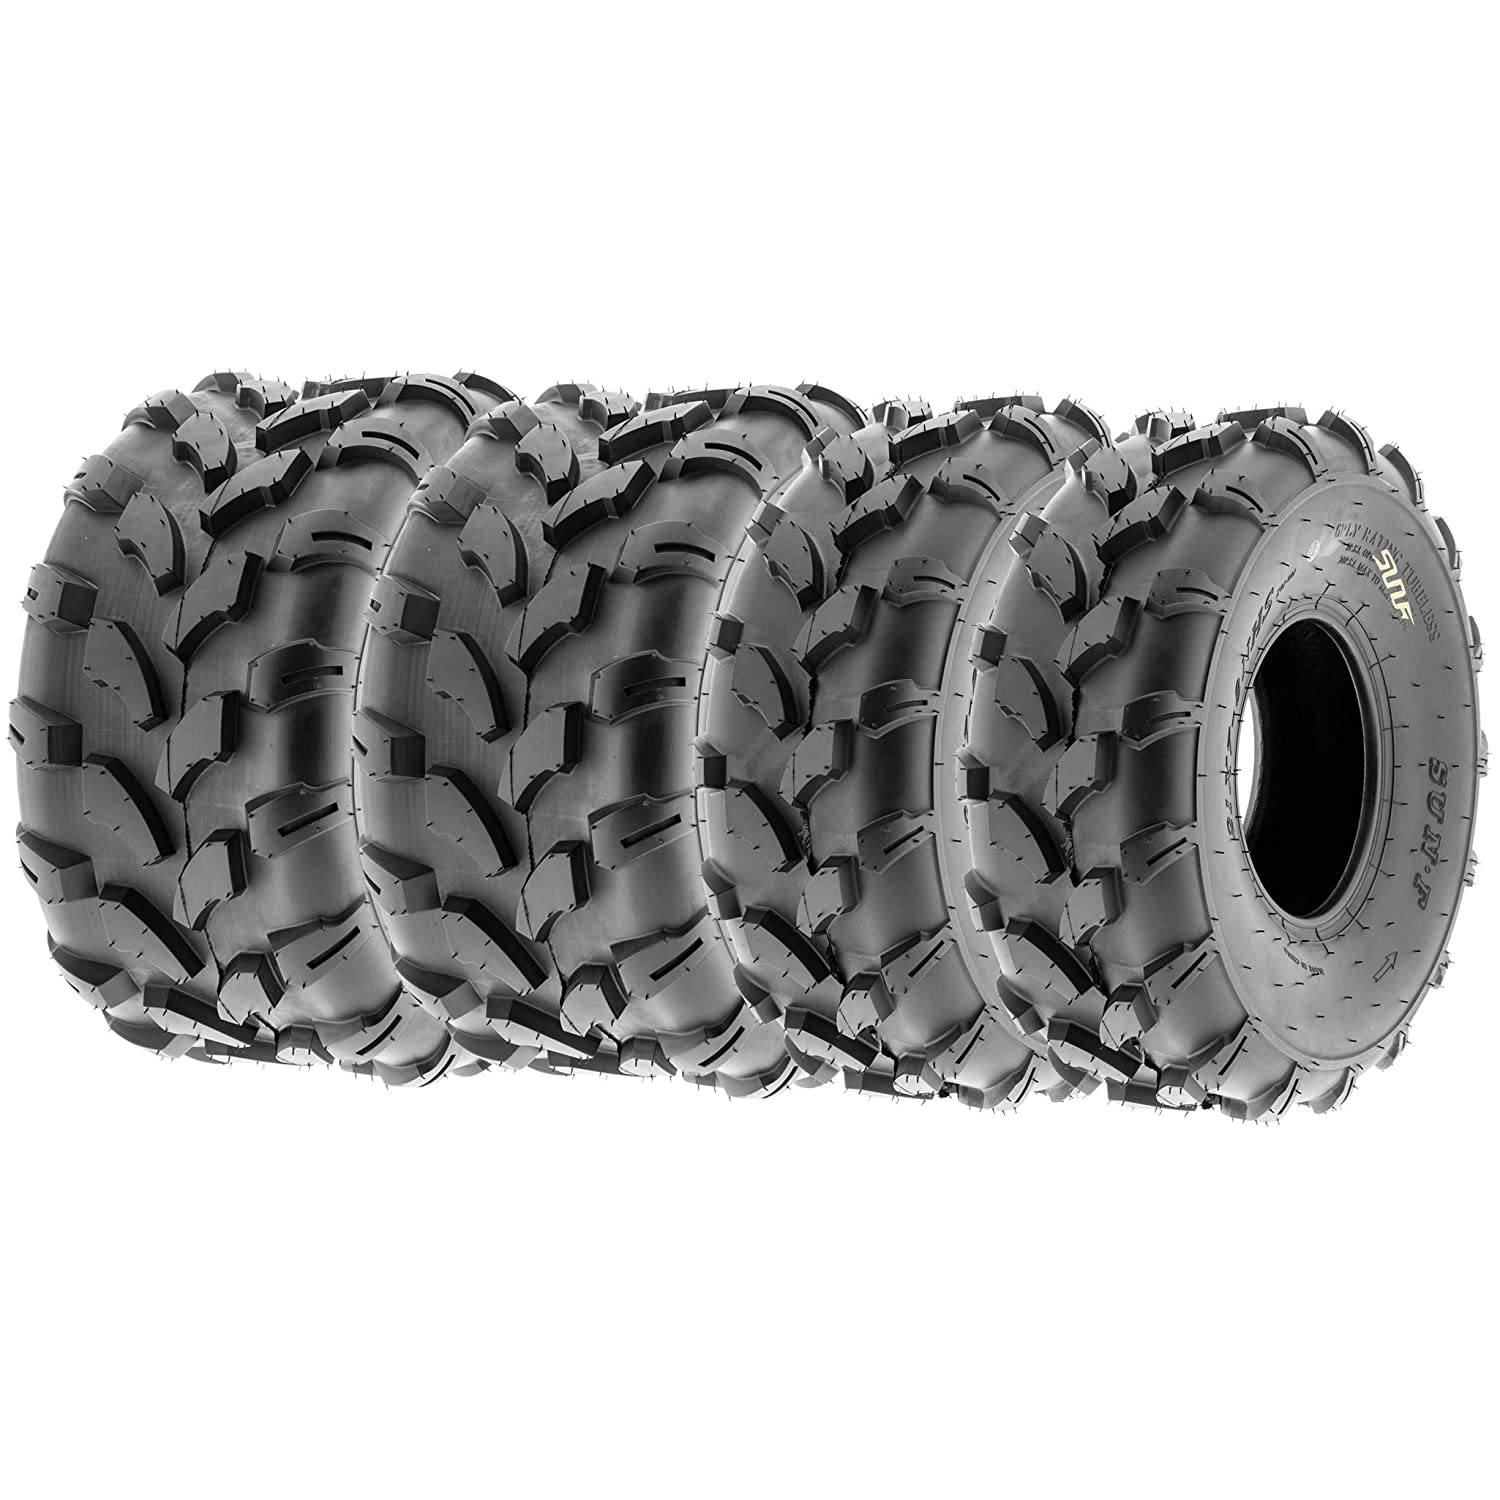 4 Set of 23x7-10 /& 23x10-10 ATV Mud /& Trail AT 6 Ply Tires A028 by SunF